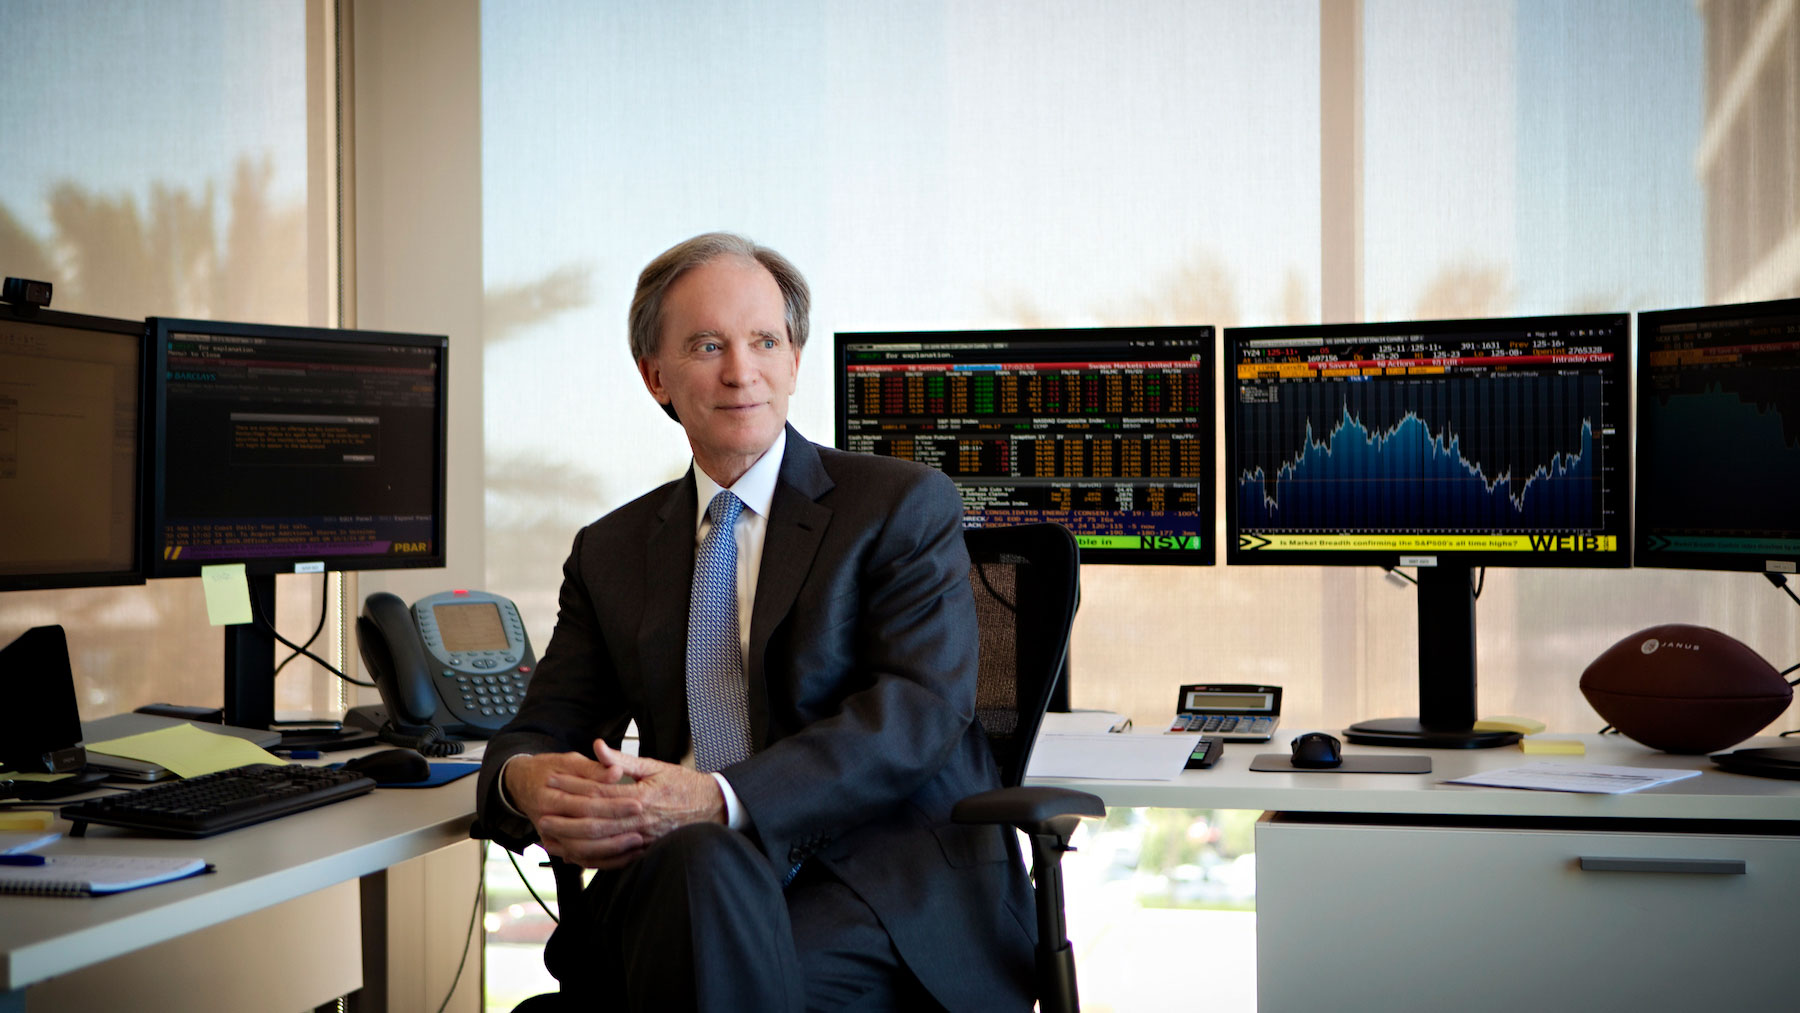 Bill Gross announces computer